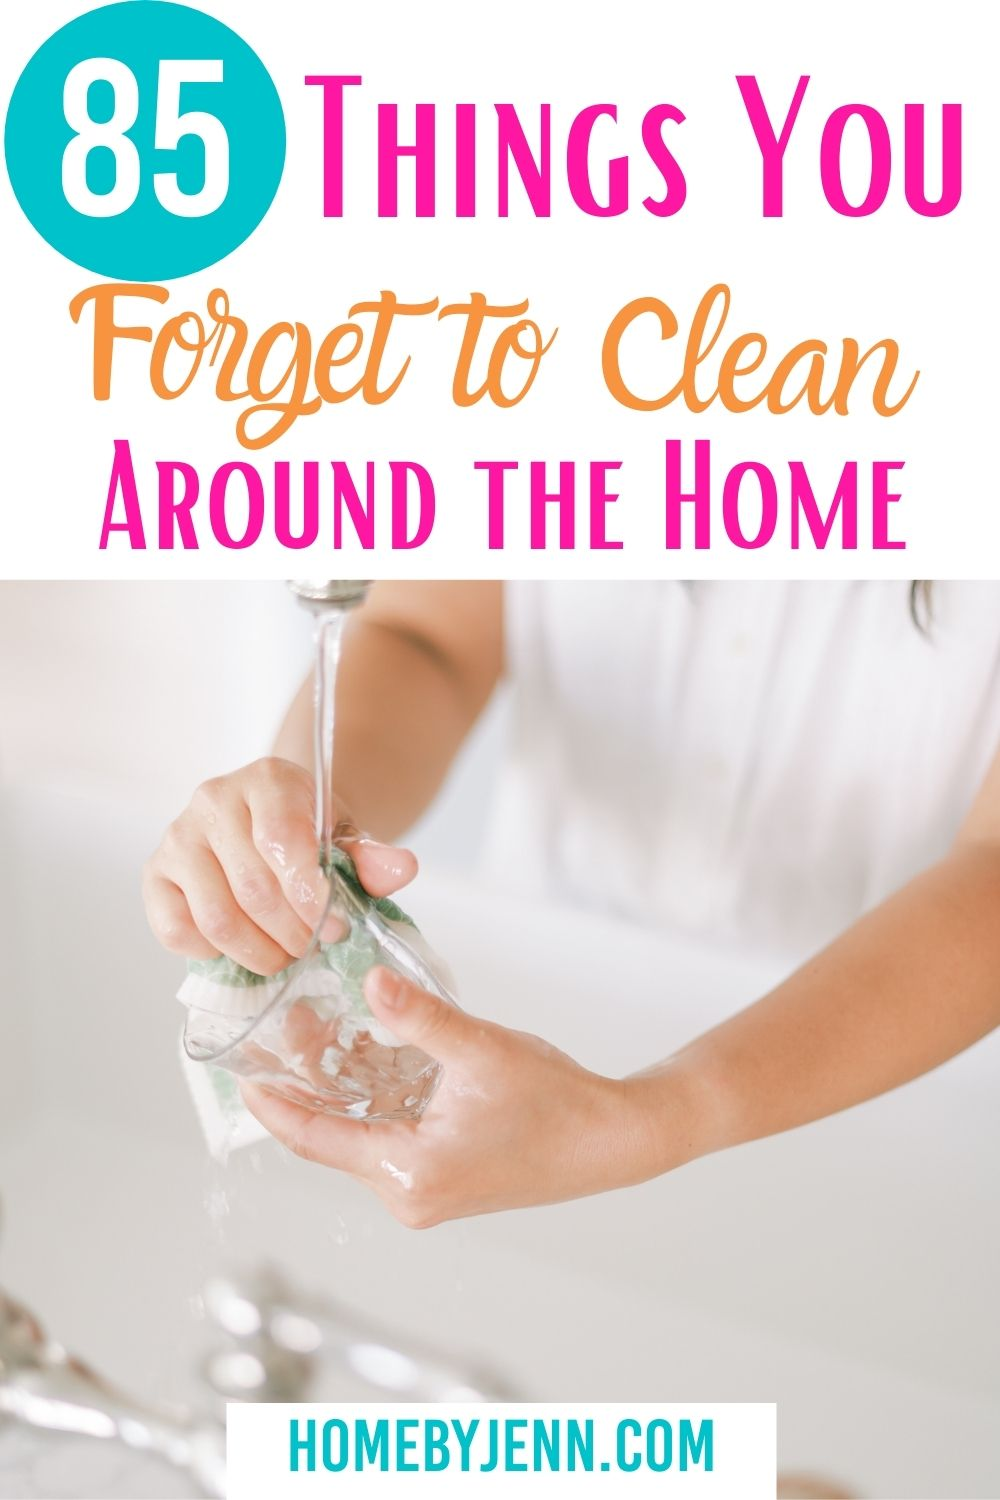 You probably have a list of chores that you do regularly that are part of your weekly cleaning schedule that maintains the cleanliness of your home. However, there are things you forget to clean and I'm going to cover those in this post. via @homebyjenn